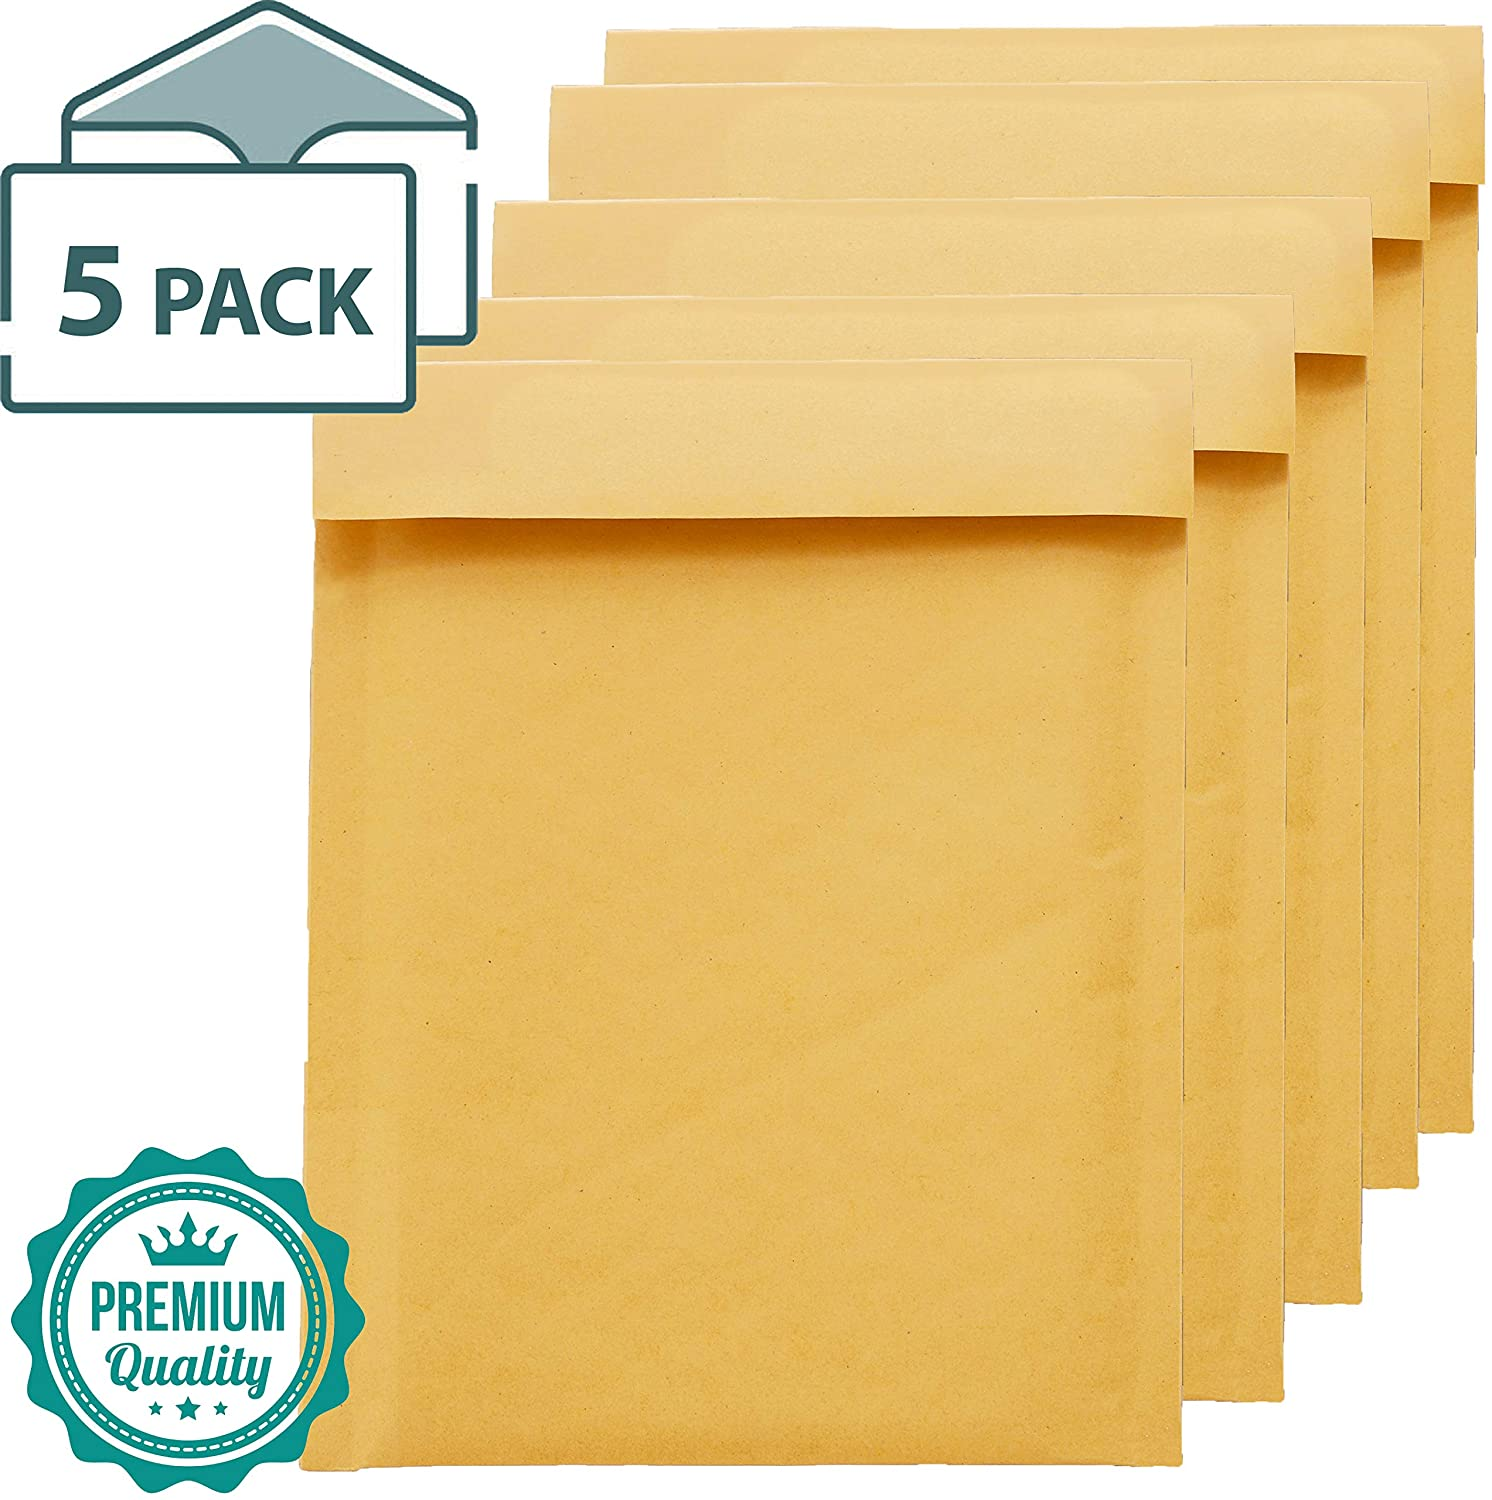 EnDoc 4x8 Inch Bubble Mailers - #000 Lightweight Envelope for Mailing Documents & Small Items - Self-Seal Gold Kraft Padded Wrap Envelopes - 5 Pack